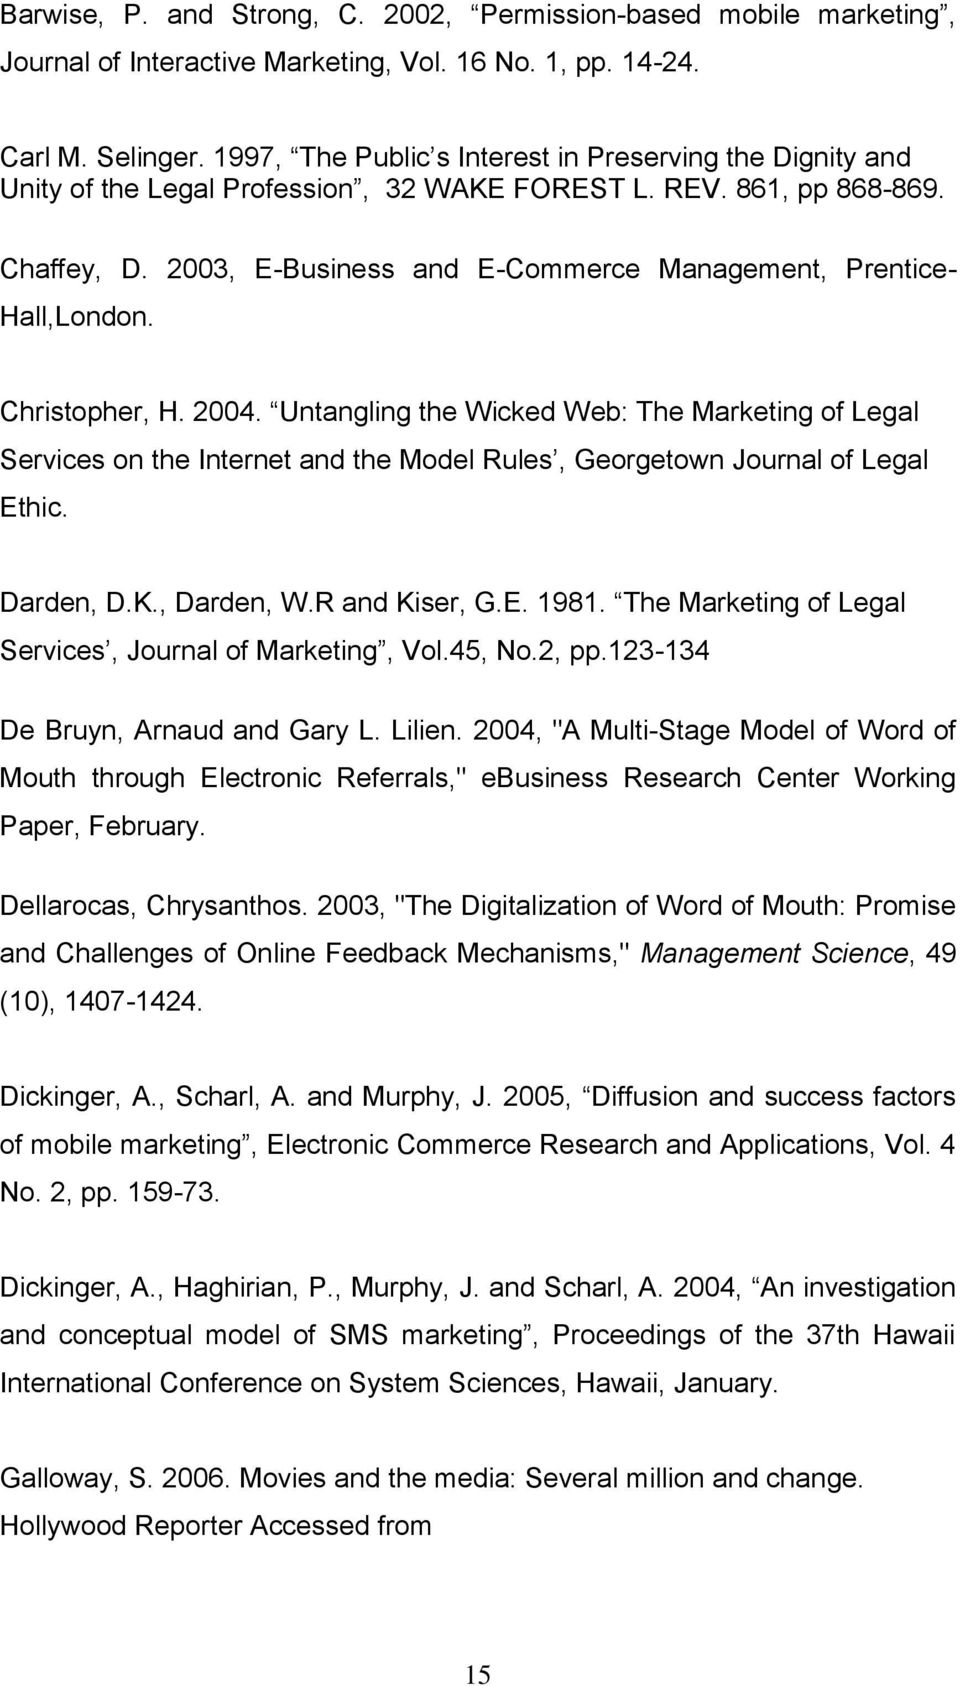 2003, E-Business and E-Commerce Management, Prentice- Hall,London. Christopher, H. 2004.